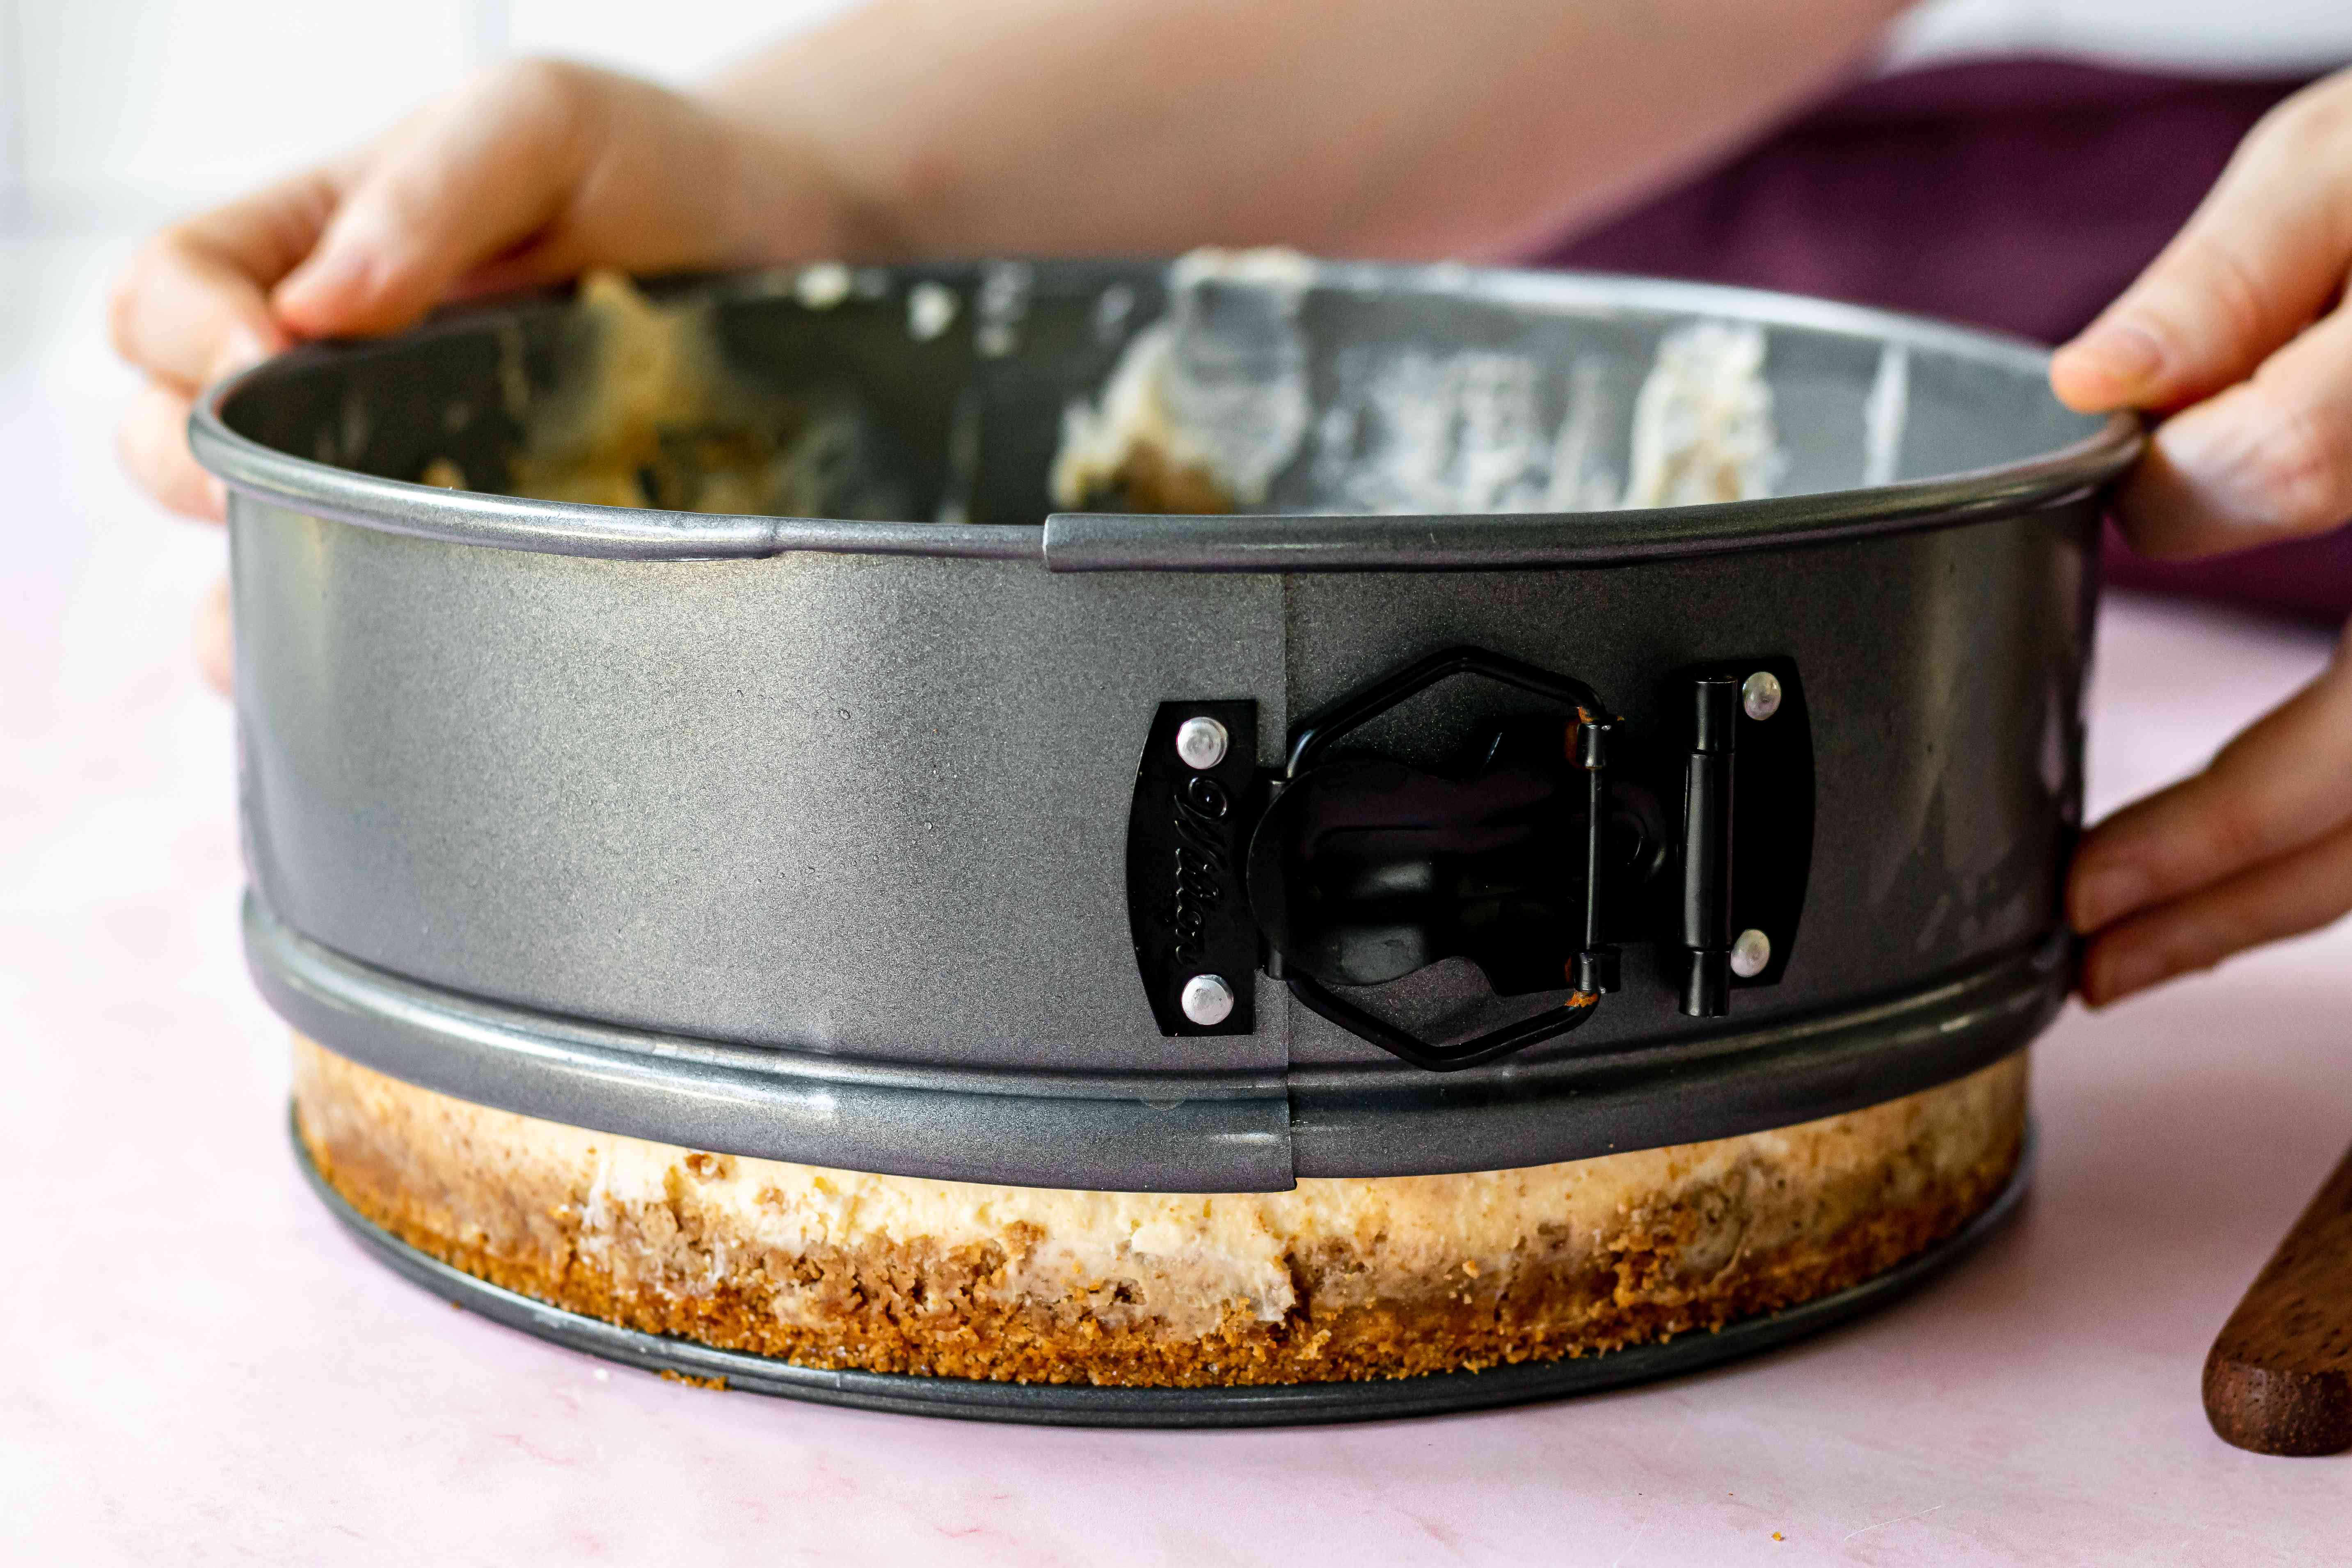 Releasing the cheesecake from the pan.